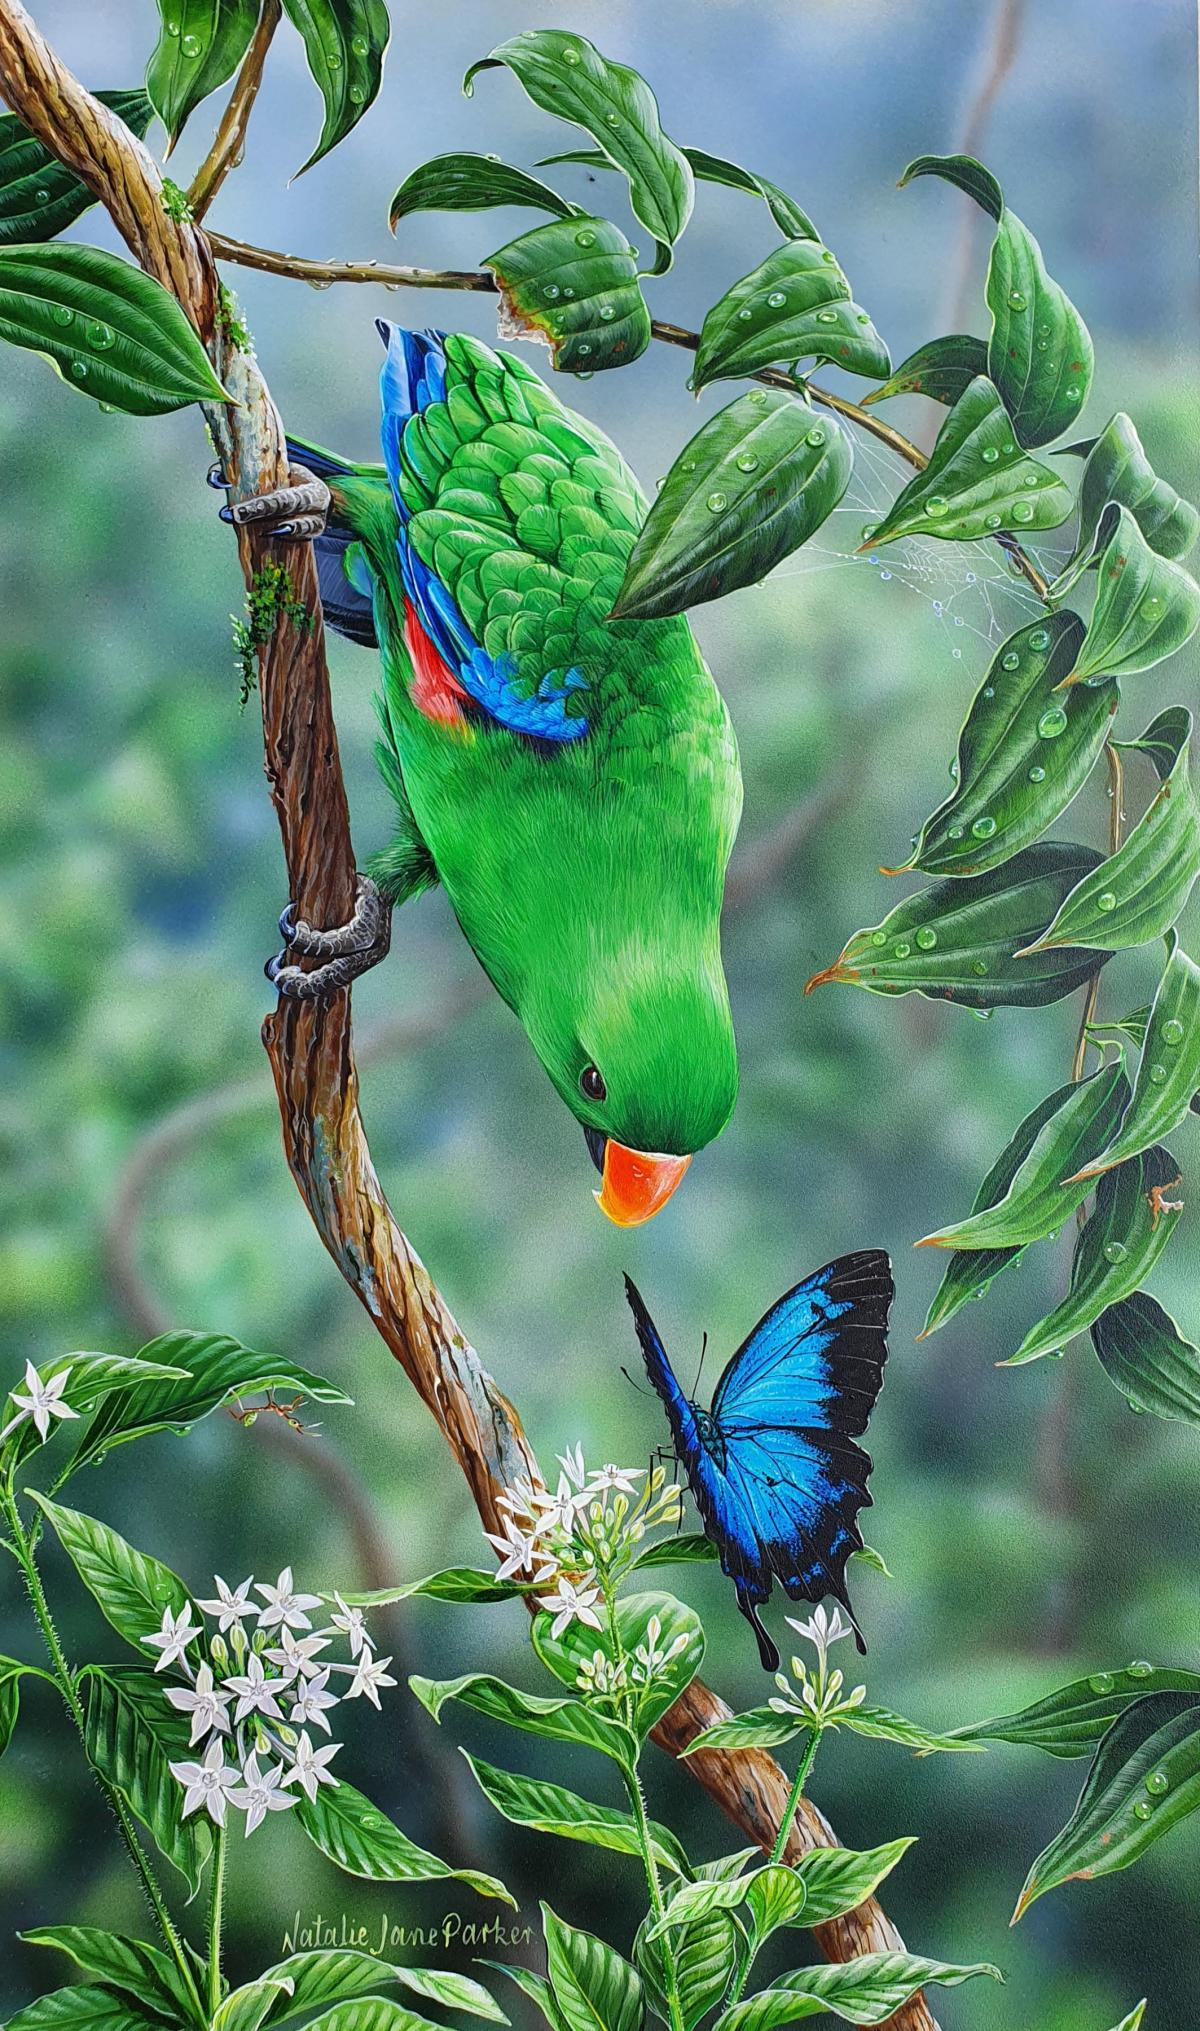 Tropical Encounter    Wallhanging by Natalie Parker   Artists for Conservation 2021